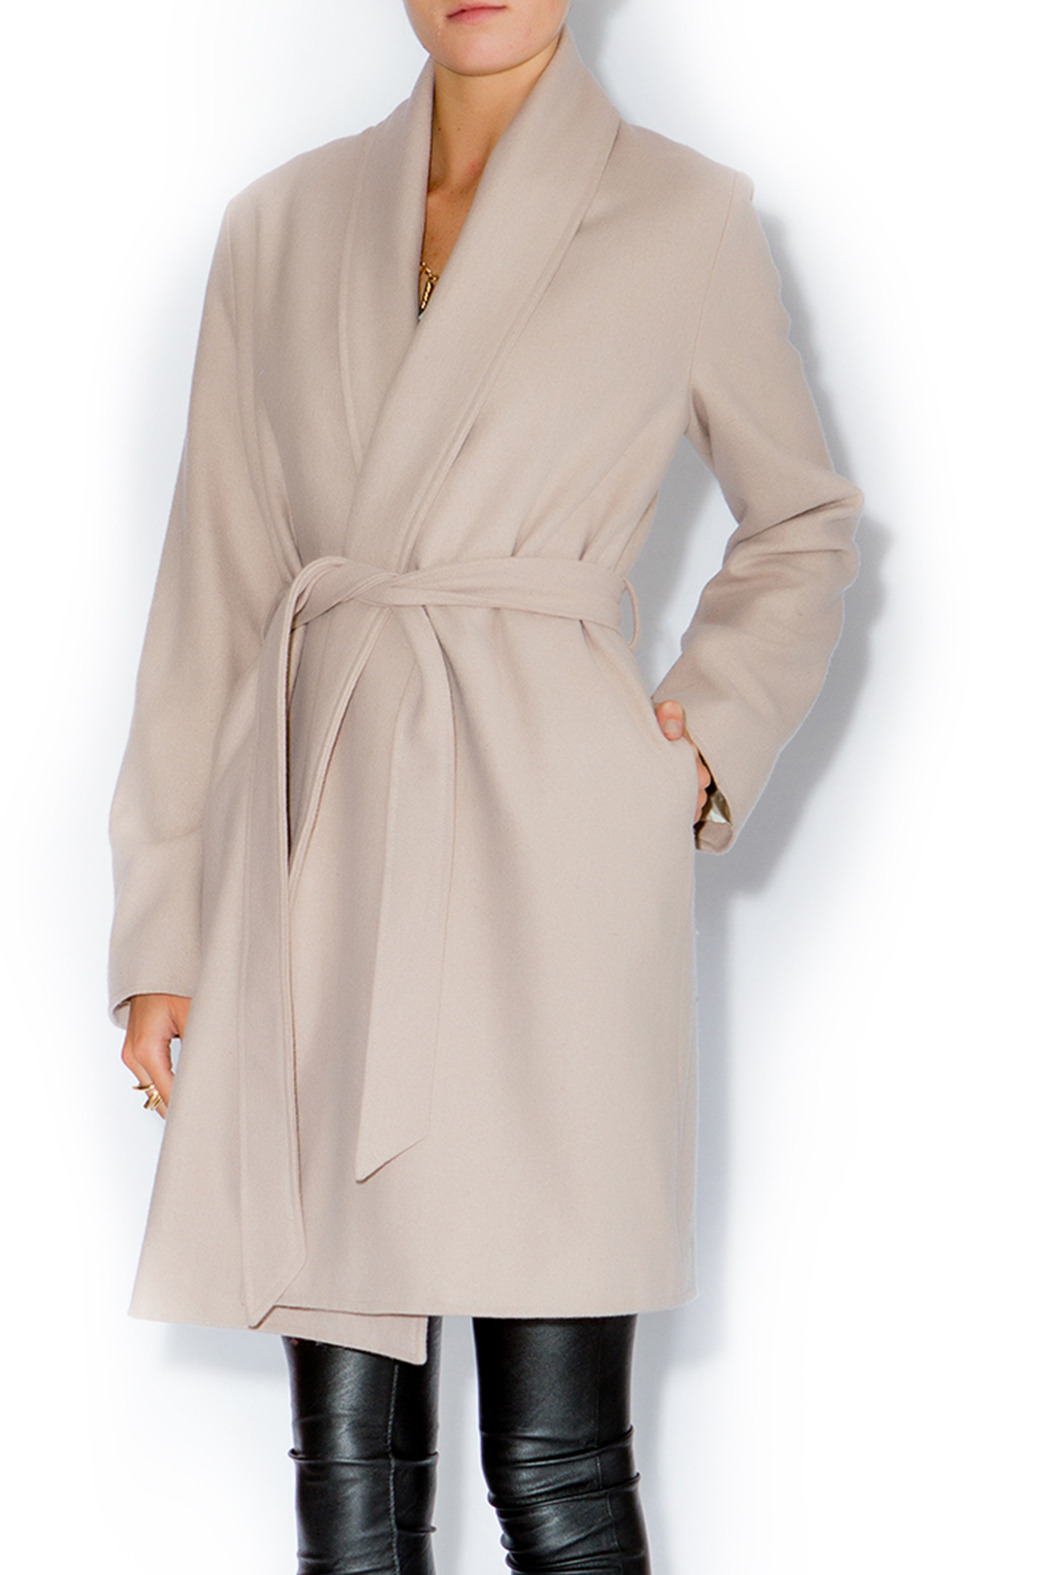 Image result for Robe style coats